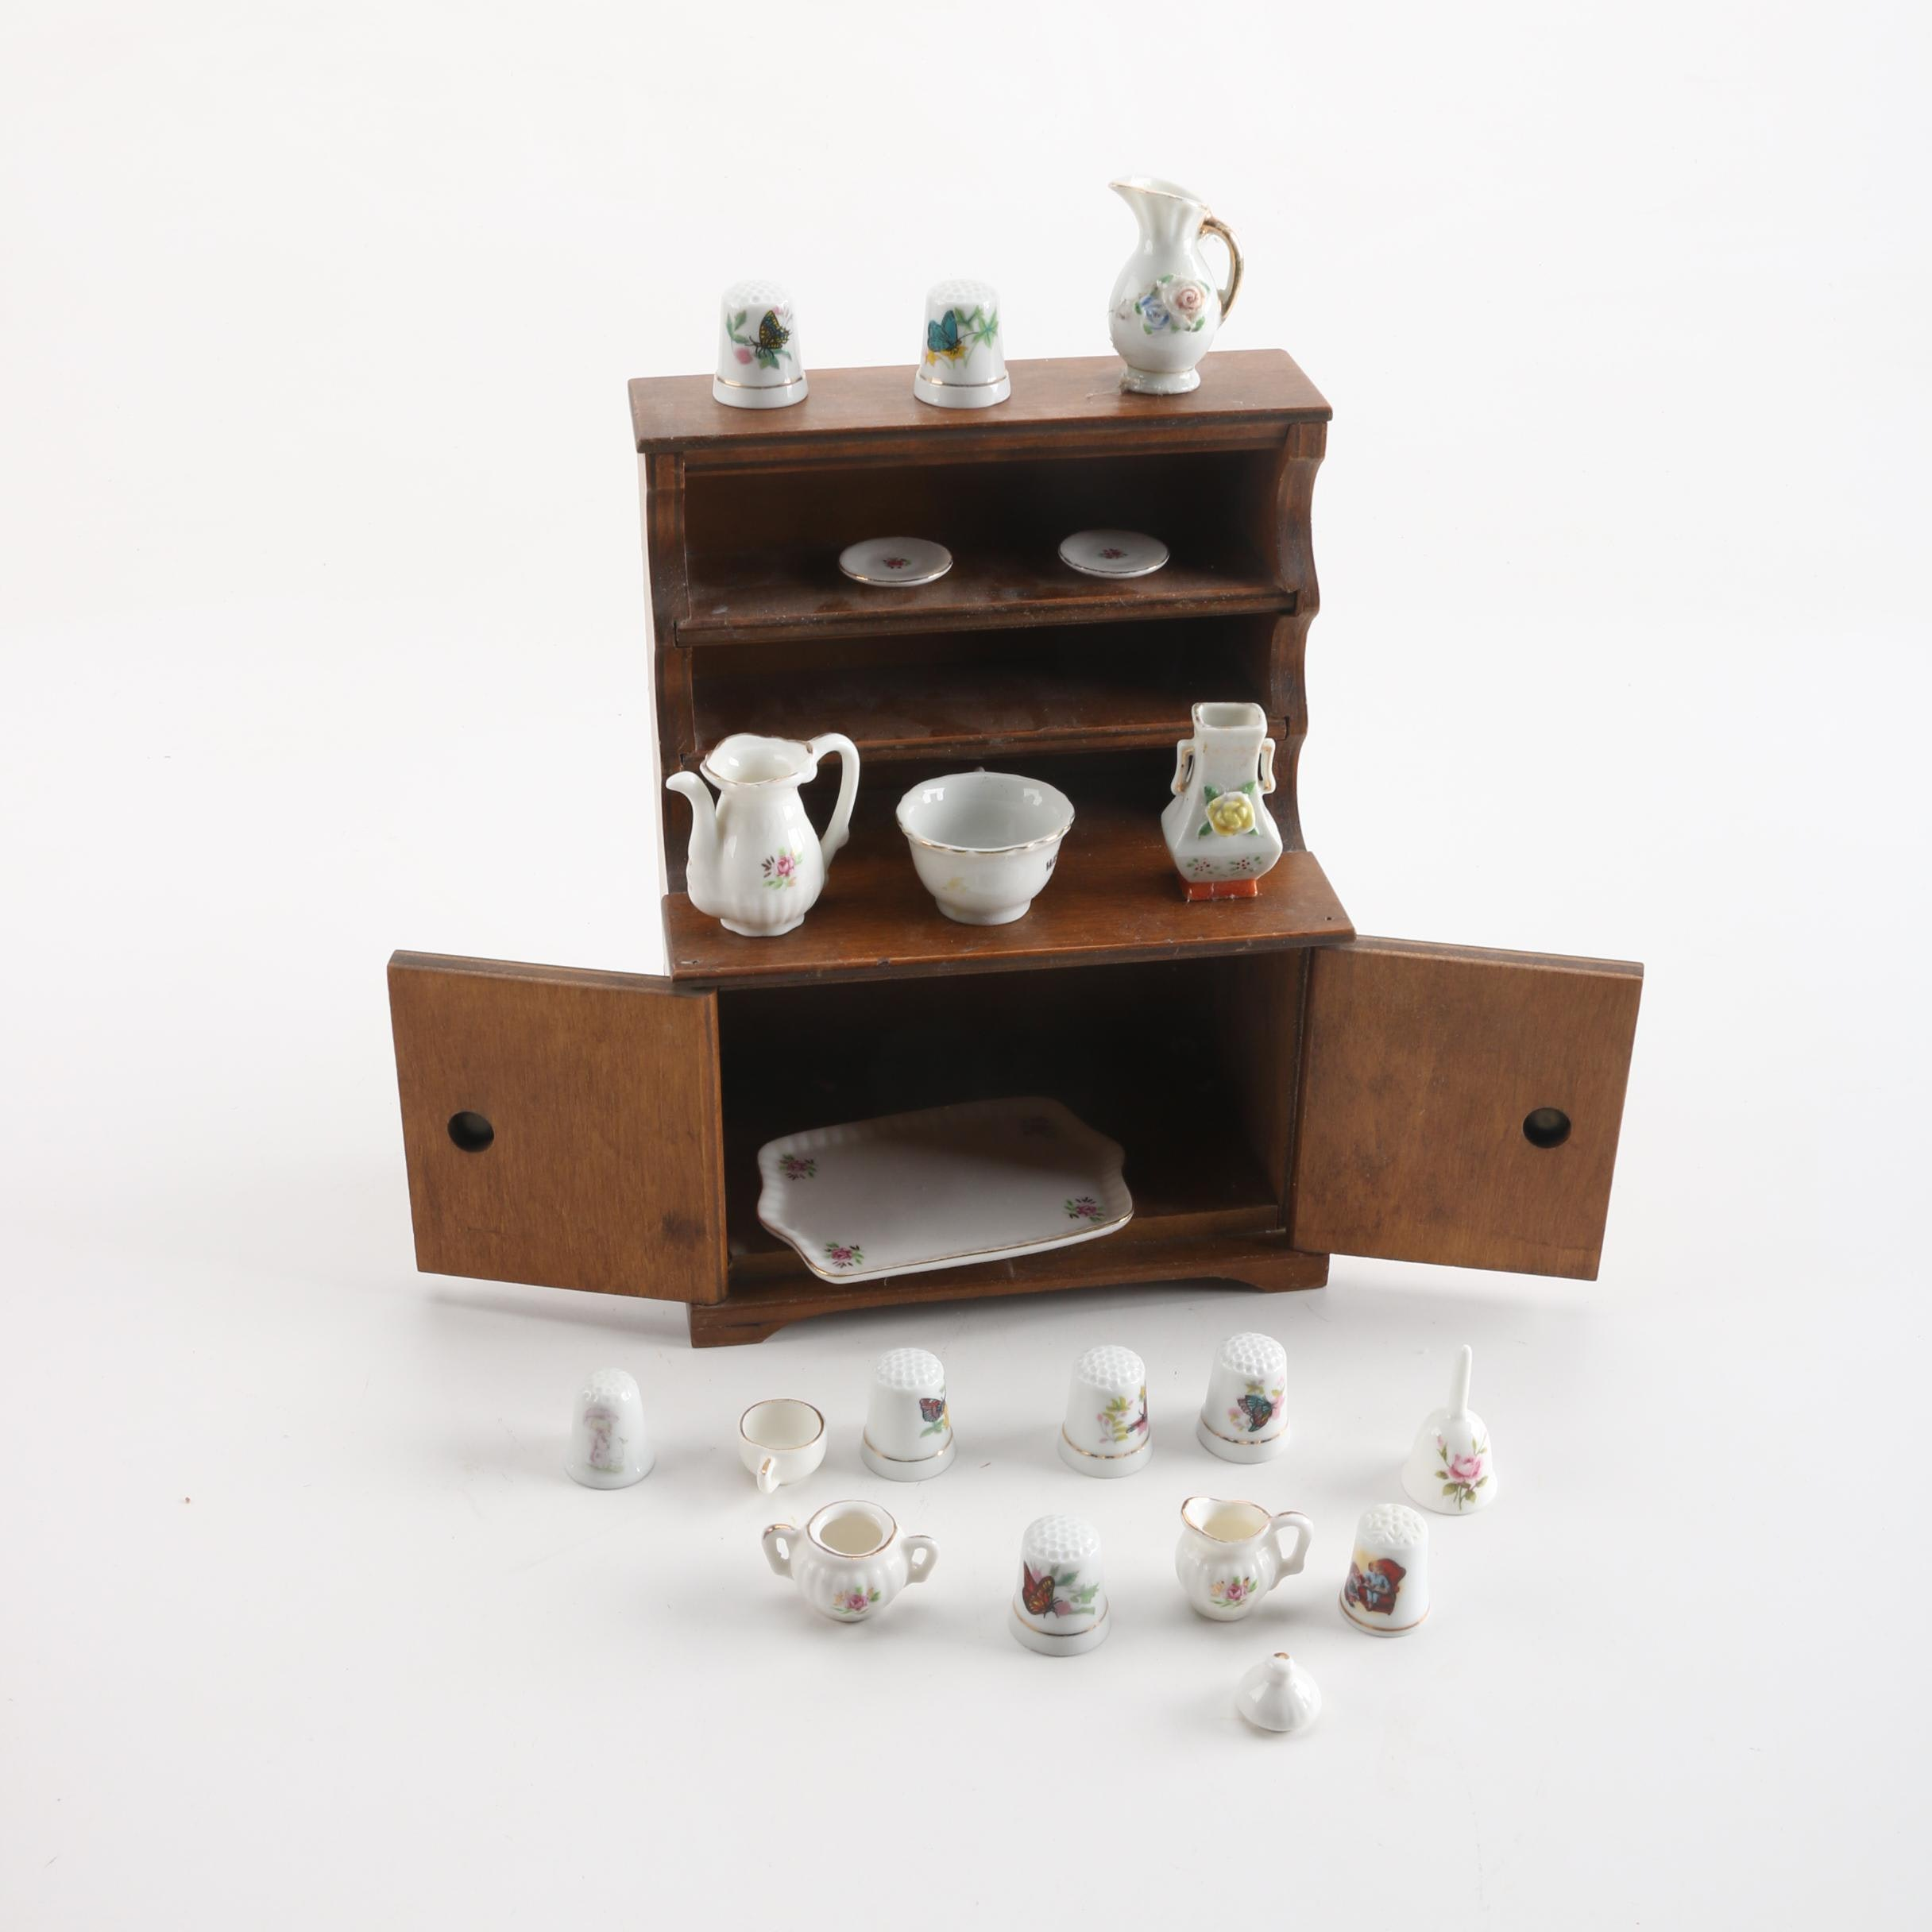 Miniature Wooden Hutch with Porcelain Miniatures and Thimbles